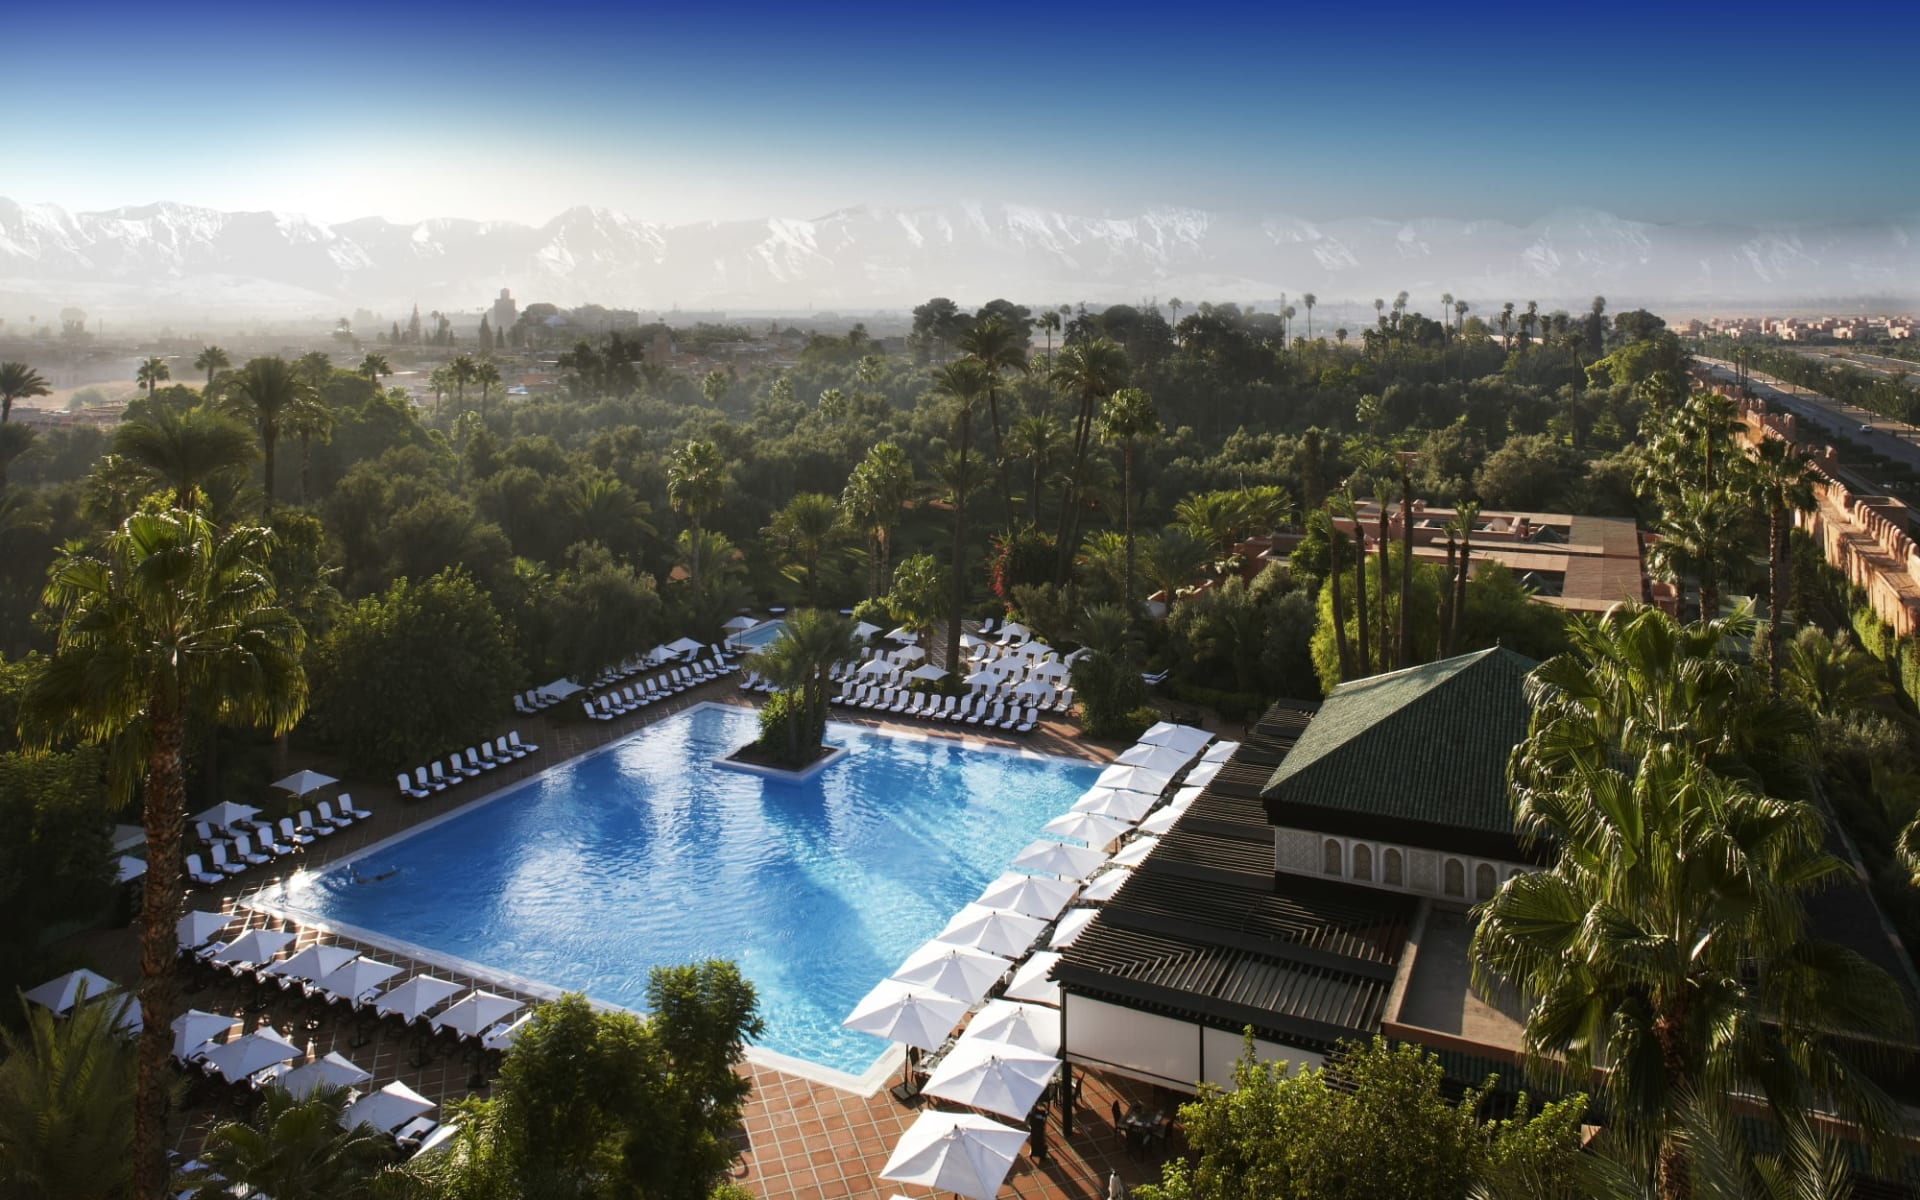 La Mamounia in Marrakesch: